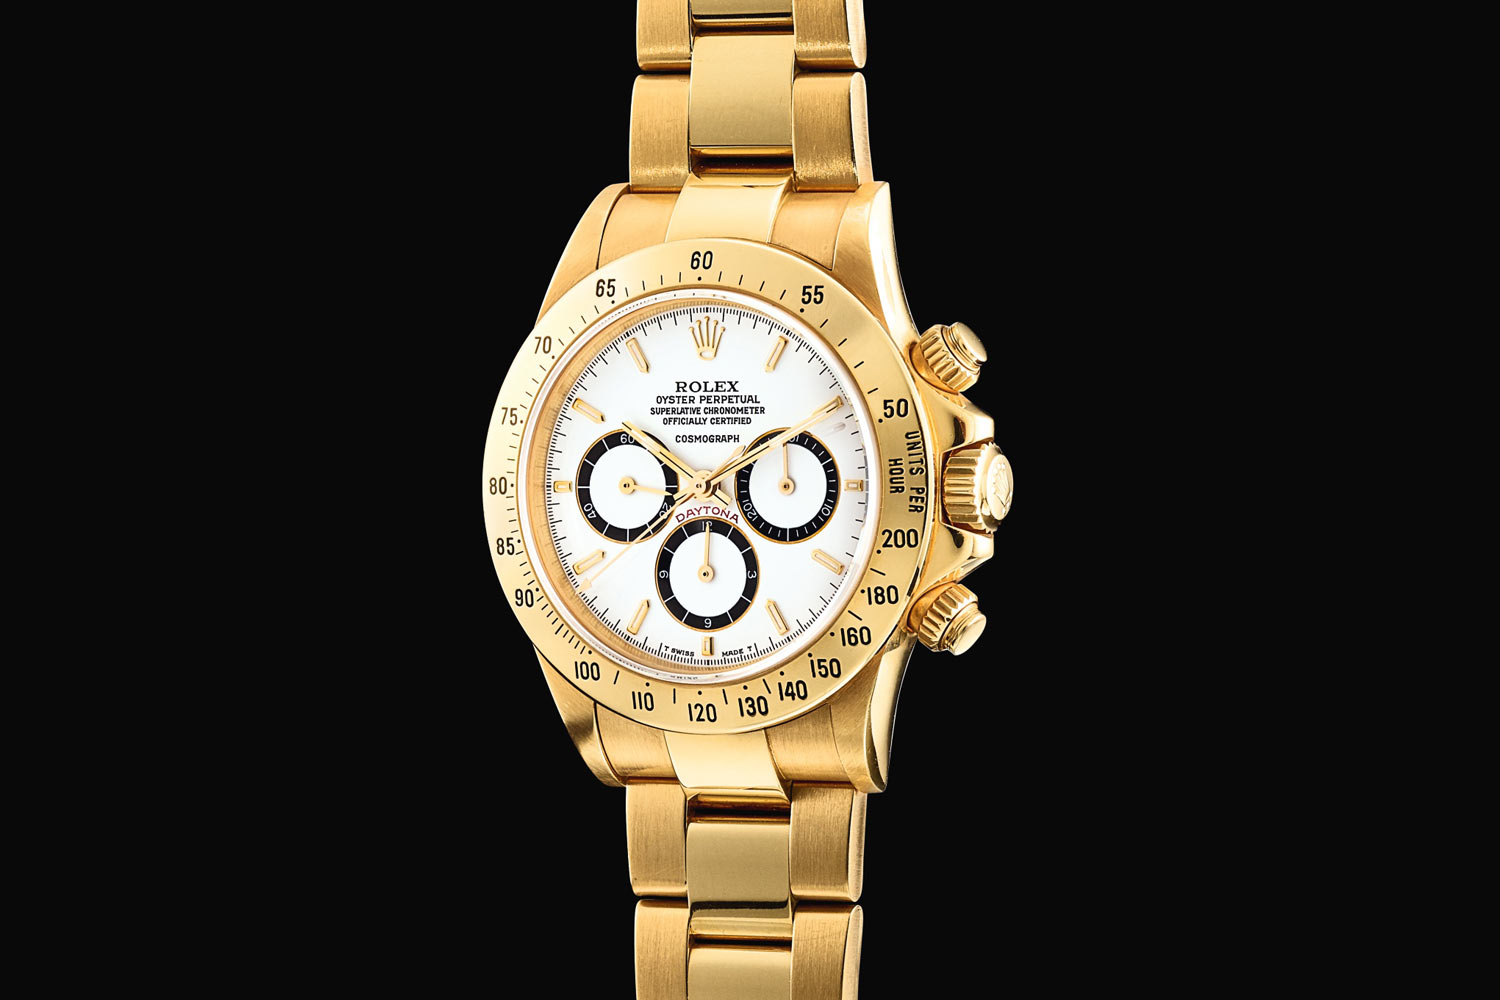 Lot 310A: Rolex 'Floating Cosmograph Zenith' Daytona Ref. 16528. Yellow gold chronograph wristwatch with bracelet, circa 1988